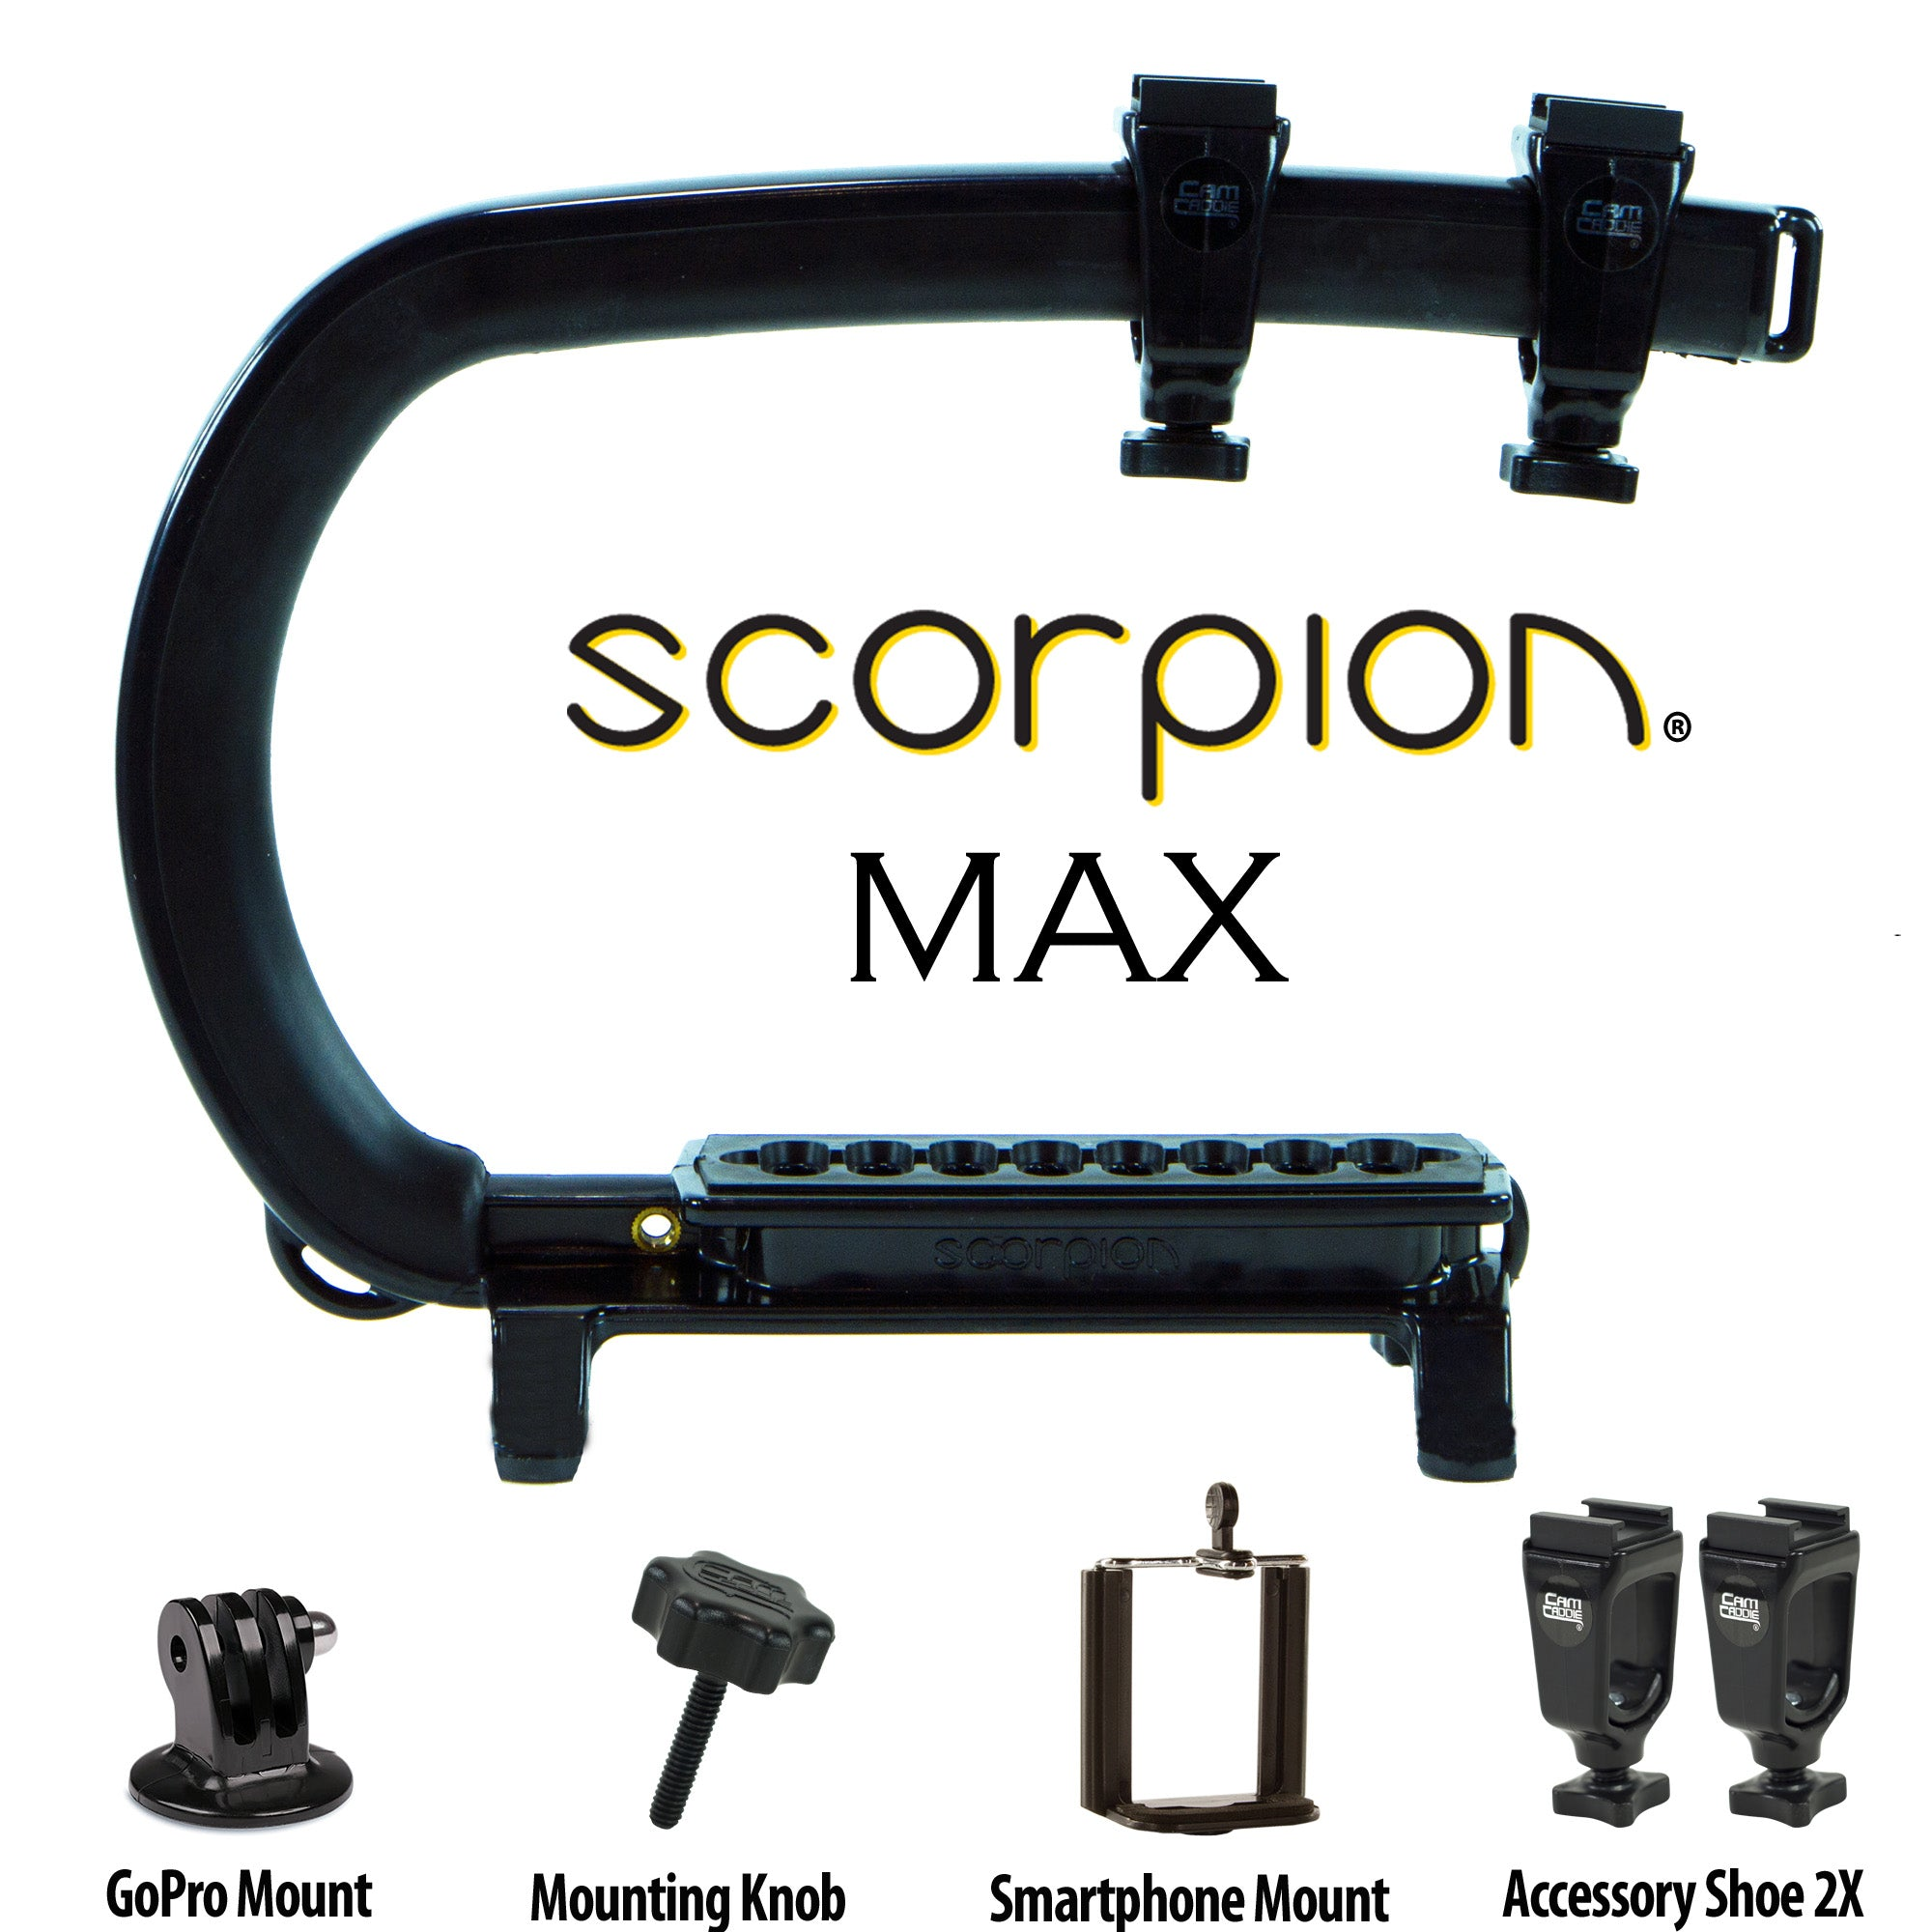 Cam Caddie Scorpion MAX Edition Universal Stabilzing Camera Handle - Includes 2 Accessory Shoes